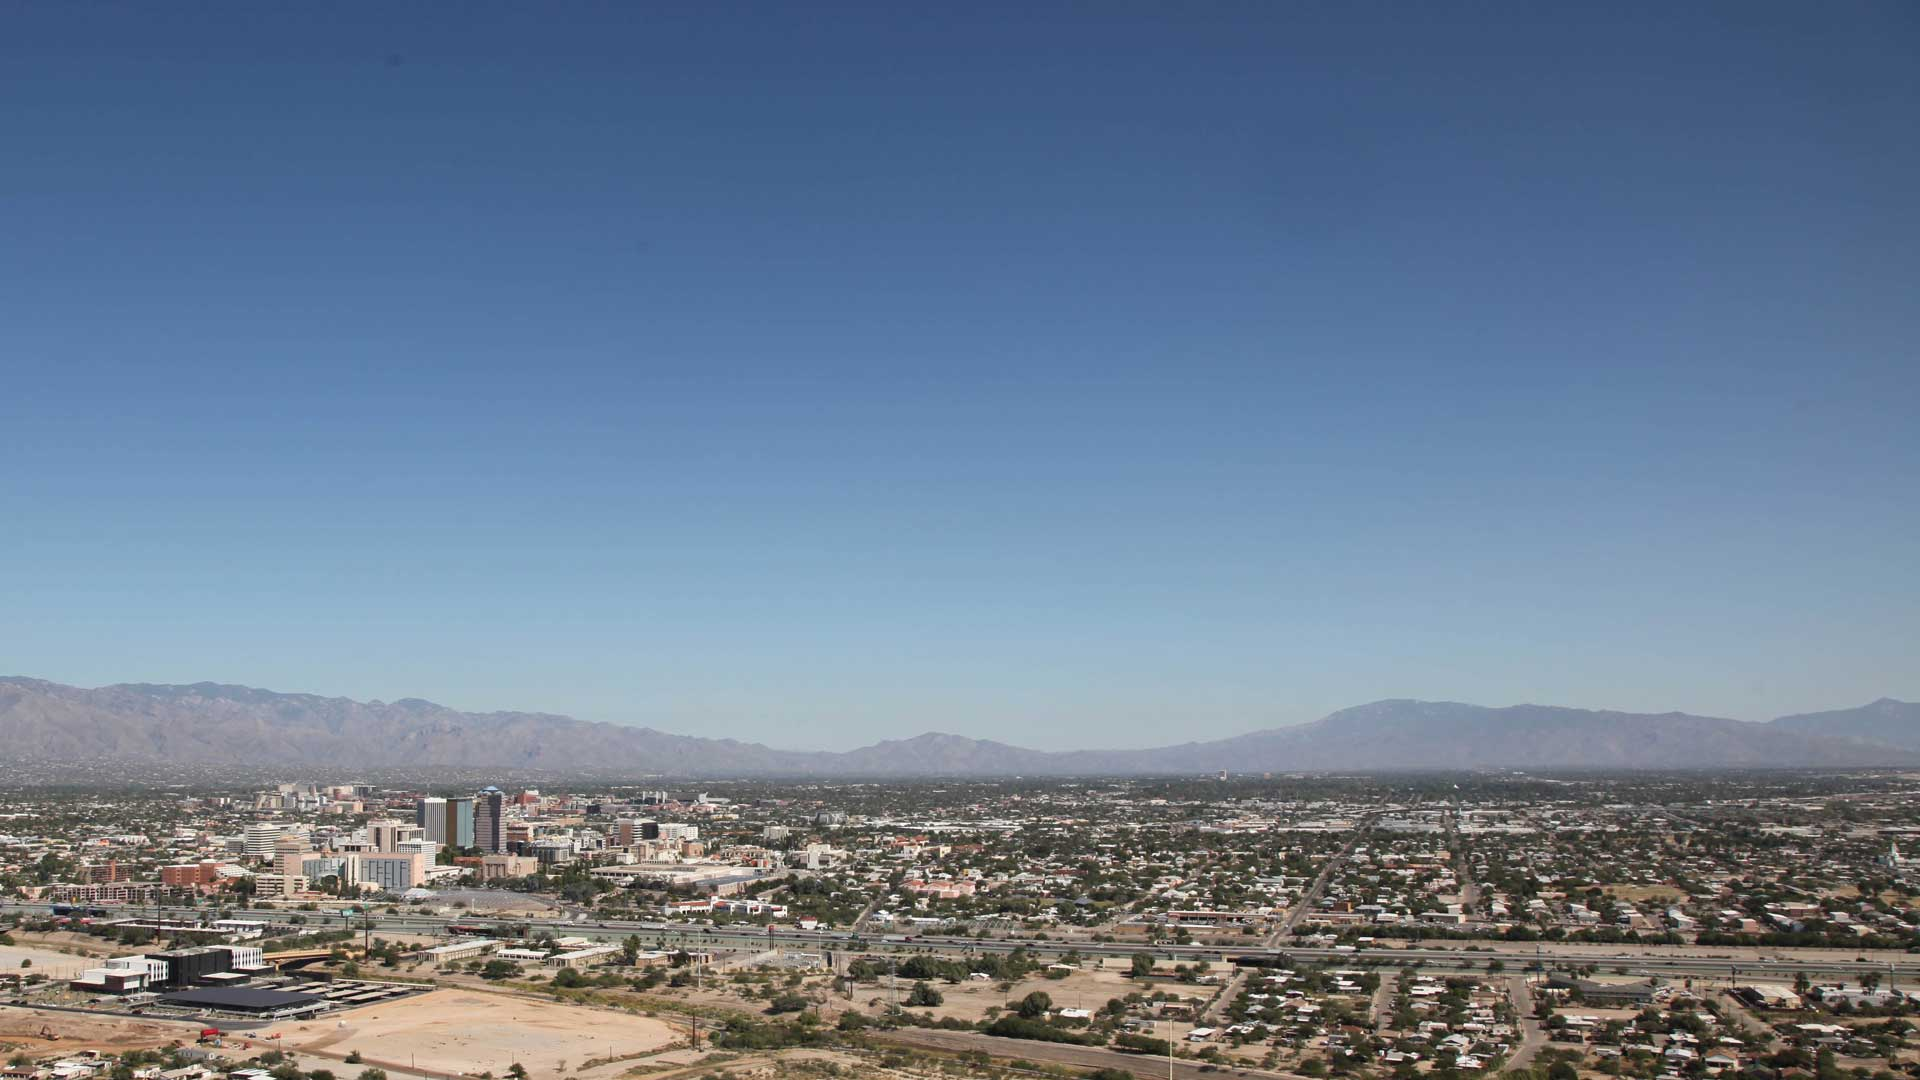 The view of the Tucson Skyline from A Mountain. Oct. 23, 2019.